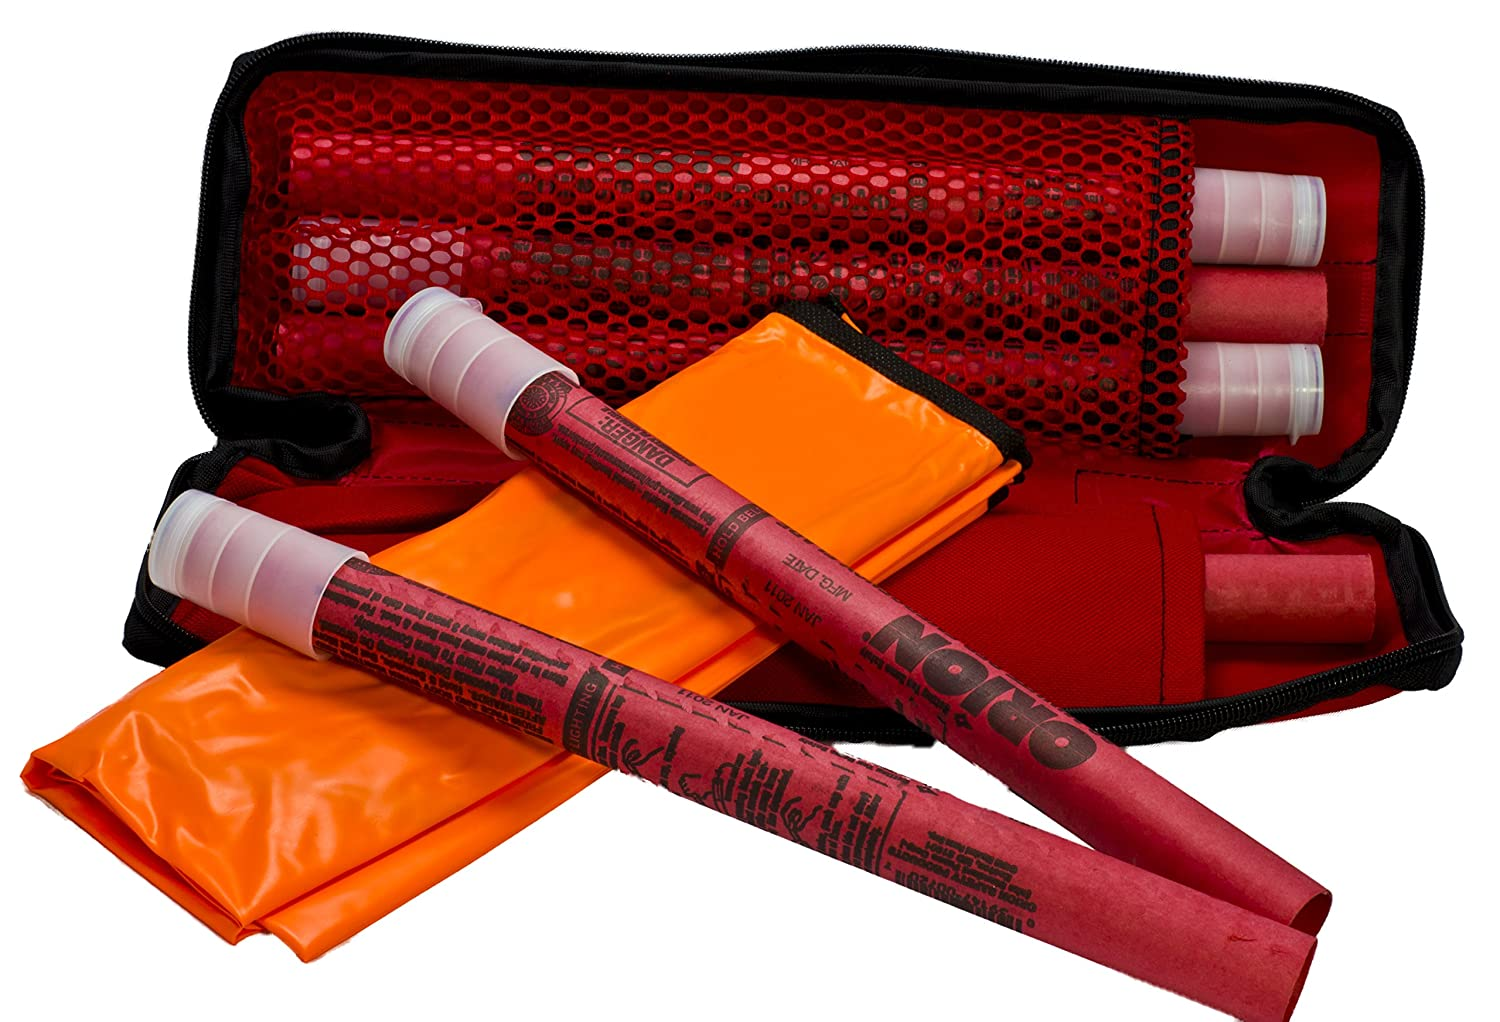 Orion Safety Products 6020 Pack of 6 20-Minute Flare,